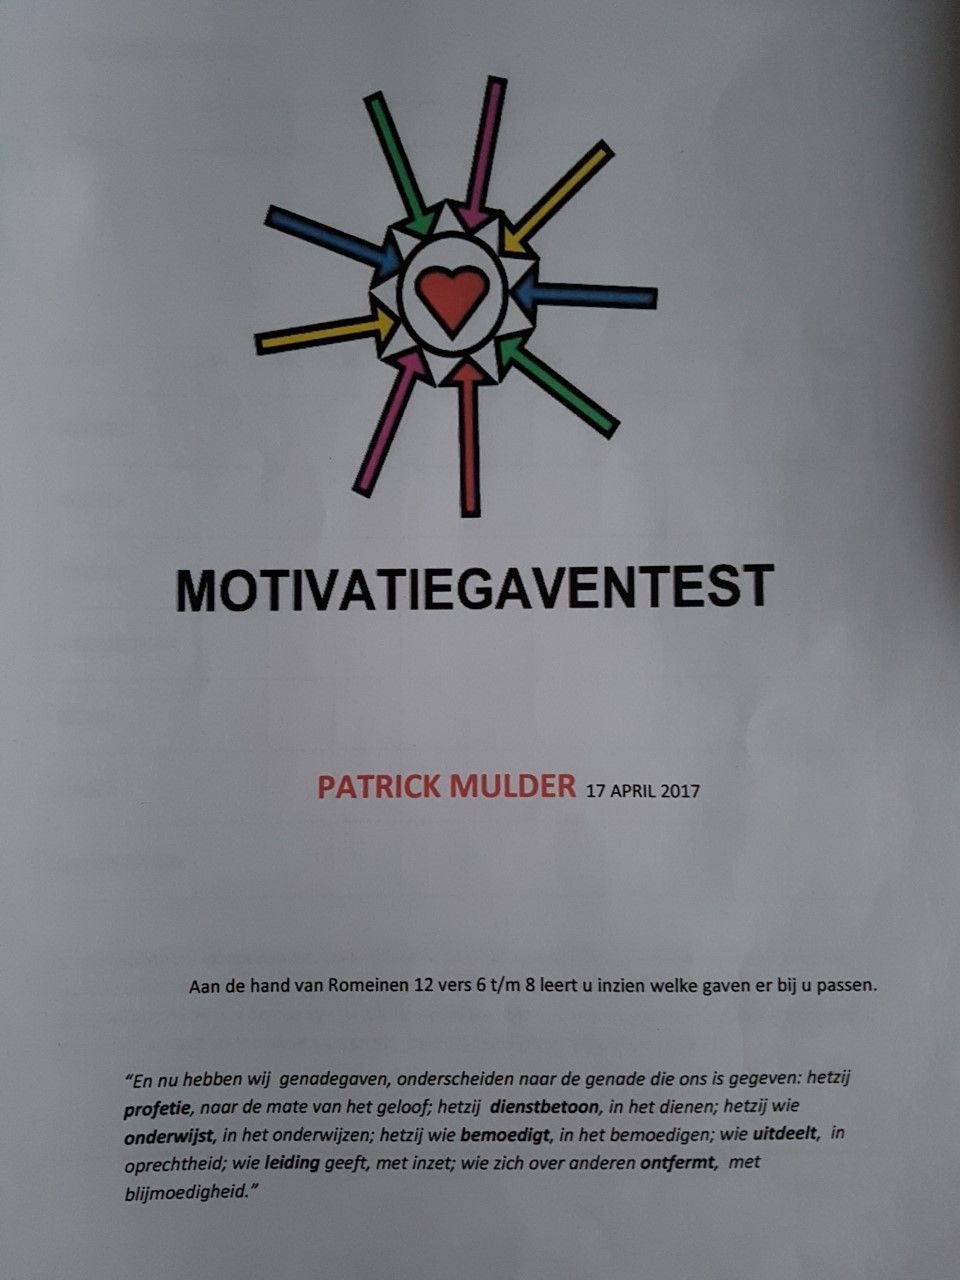 Motivatie­gaventest